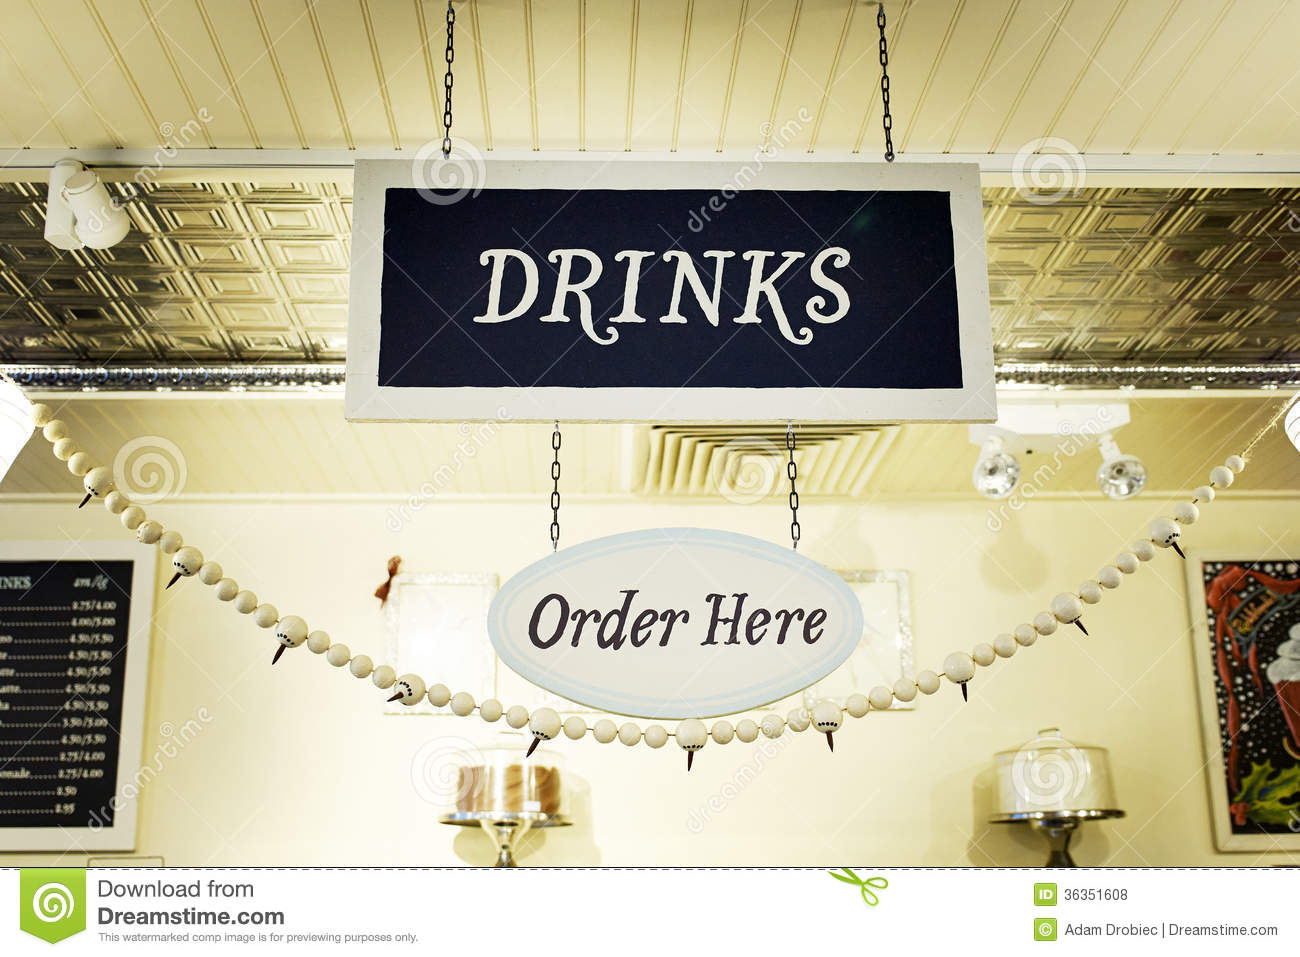 Very best Order here stock photo. Image of indoors, sign, preparation - 36351608 PZ85